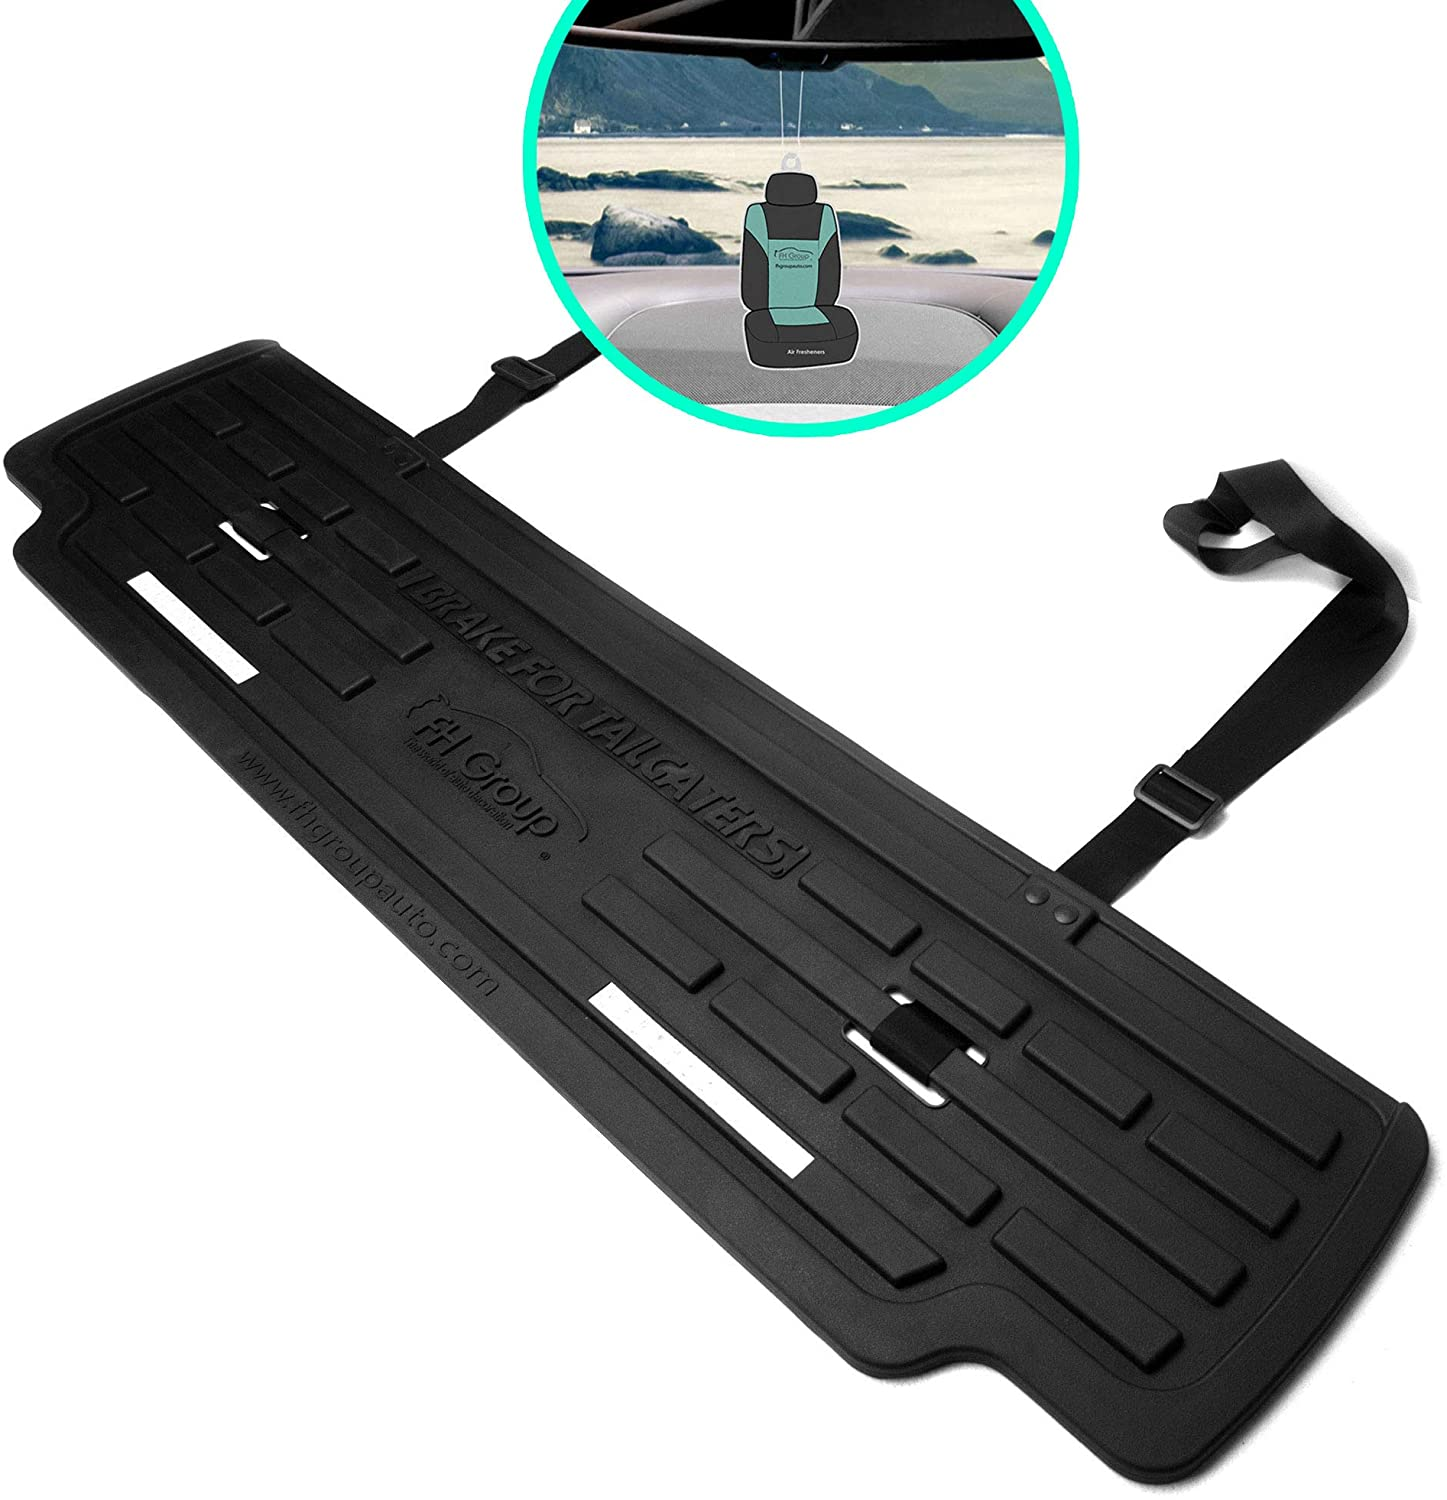 FH Group Universal Fit Rubber Mat for Rear of Vehicle (Black) with Gift- Universal Fit for Trucks, SUVs, and Vans